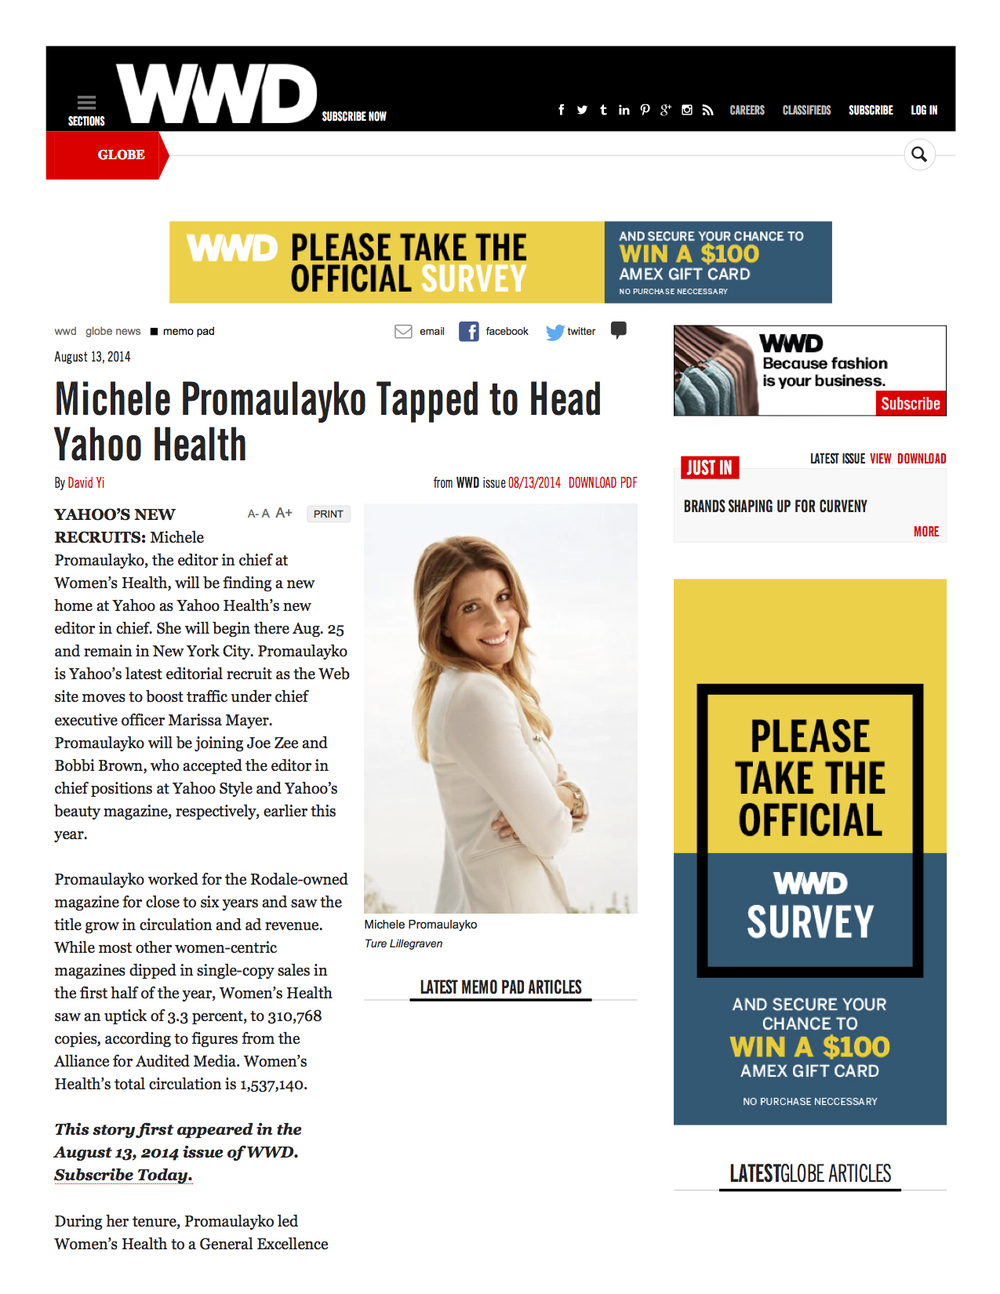 WWD - Michele Promaulayko Tapped to Head Yahoo Health1.jpg